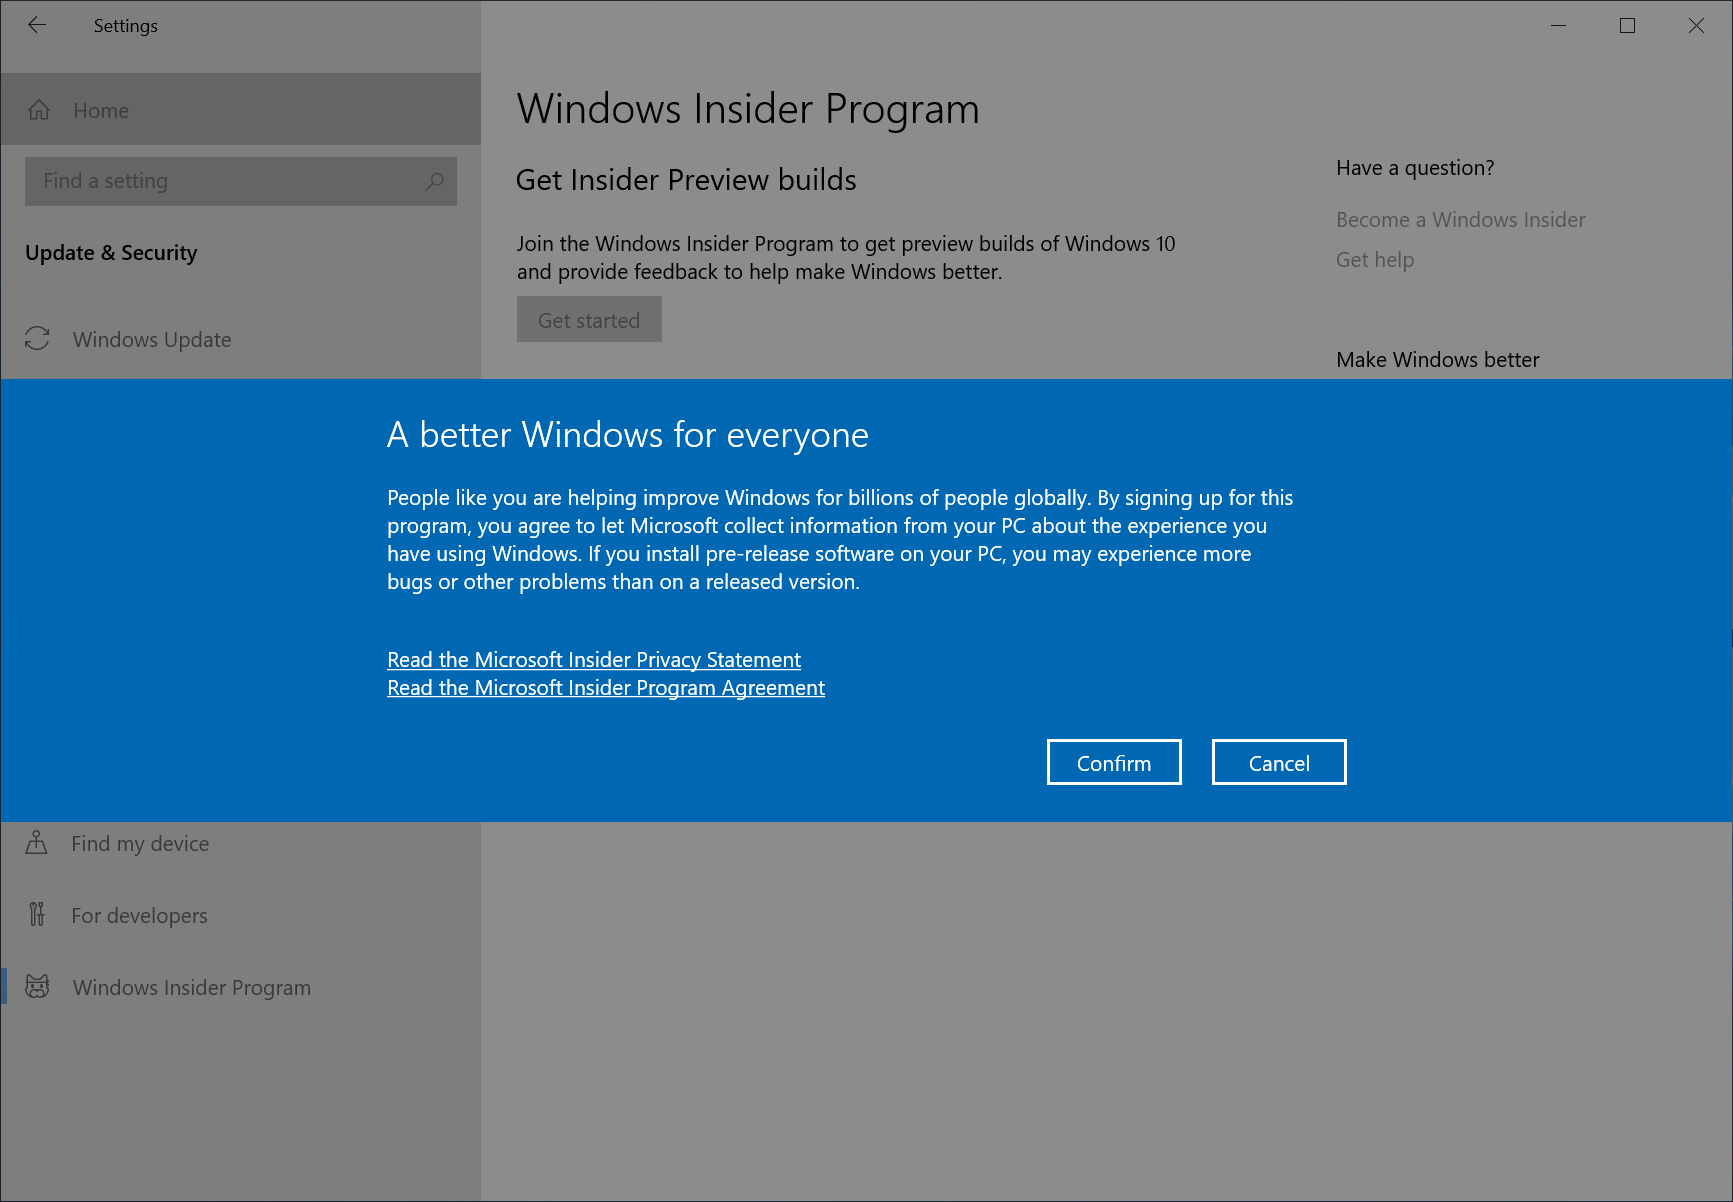 Getting the November 2019 Update Ready for Release  Insider c9d9b8d19c827f9461fd8d30def7455f.png